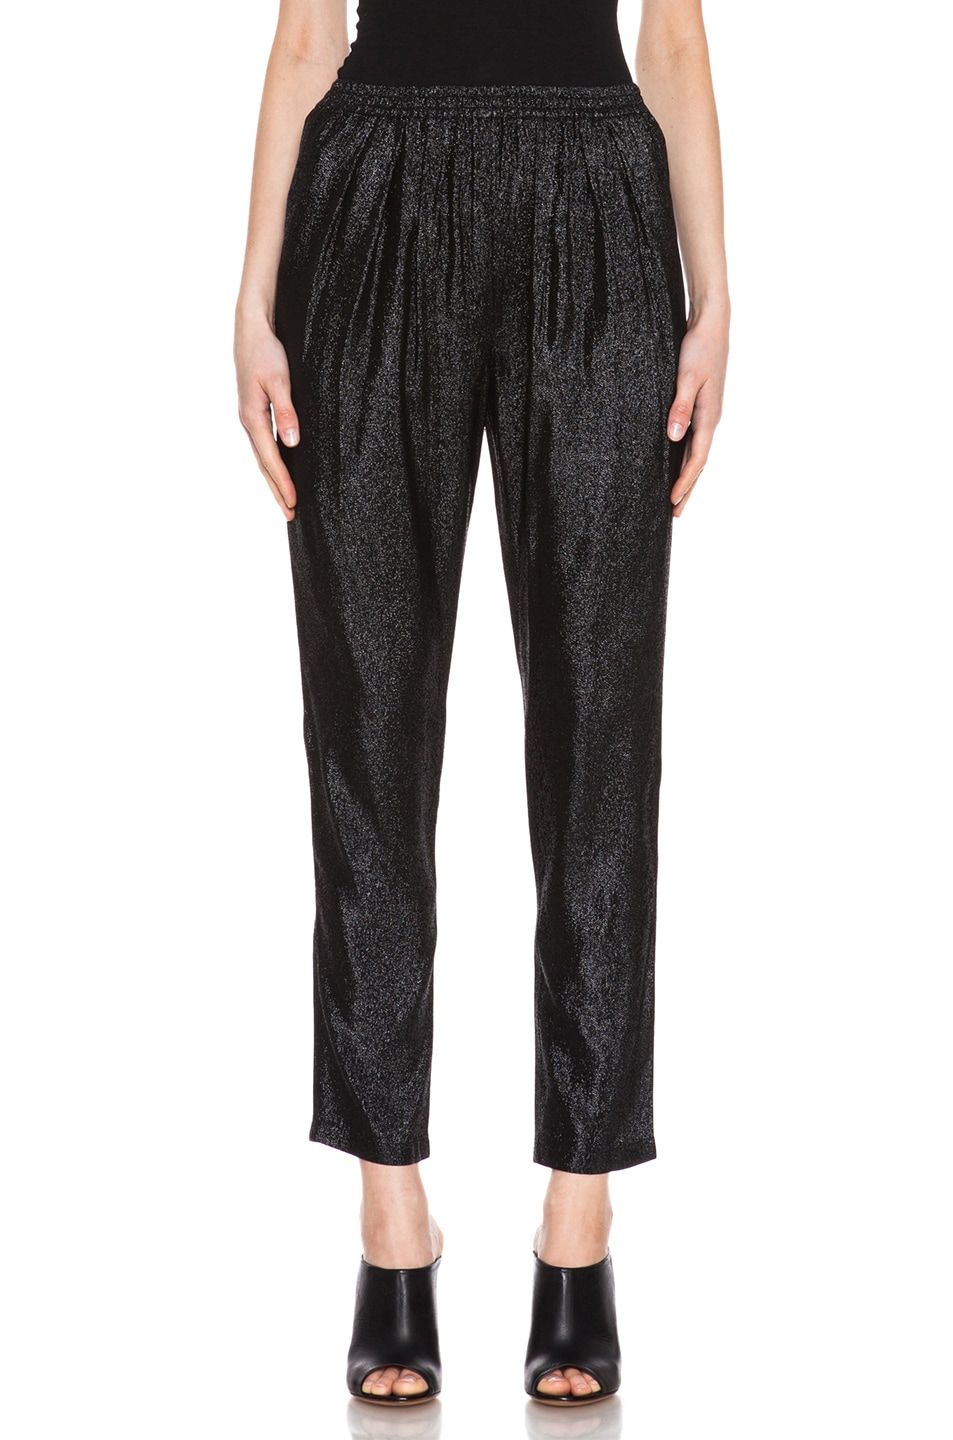 Image 1 of Stella McCartney Elastic Poly-Blend Trouser in Black Shine